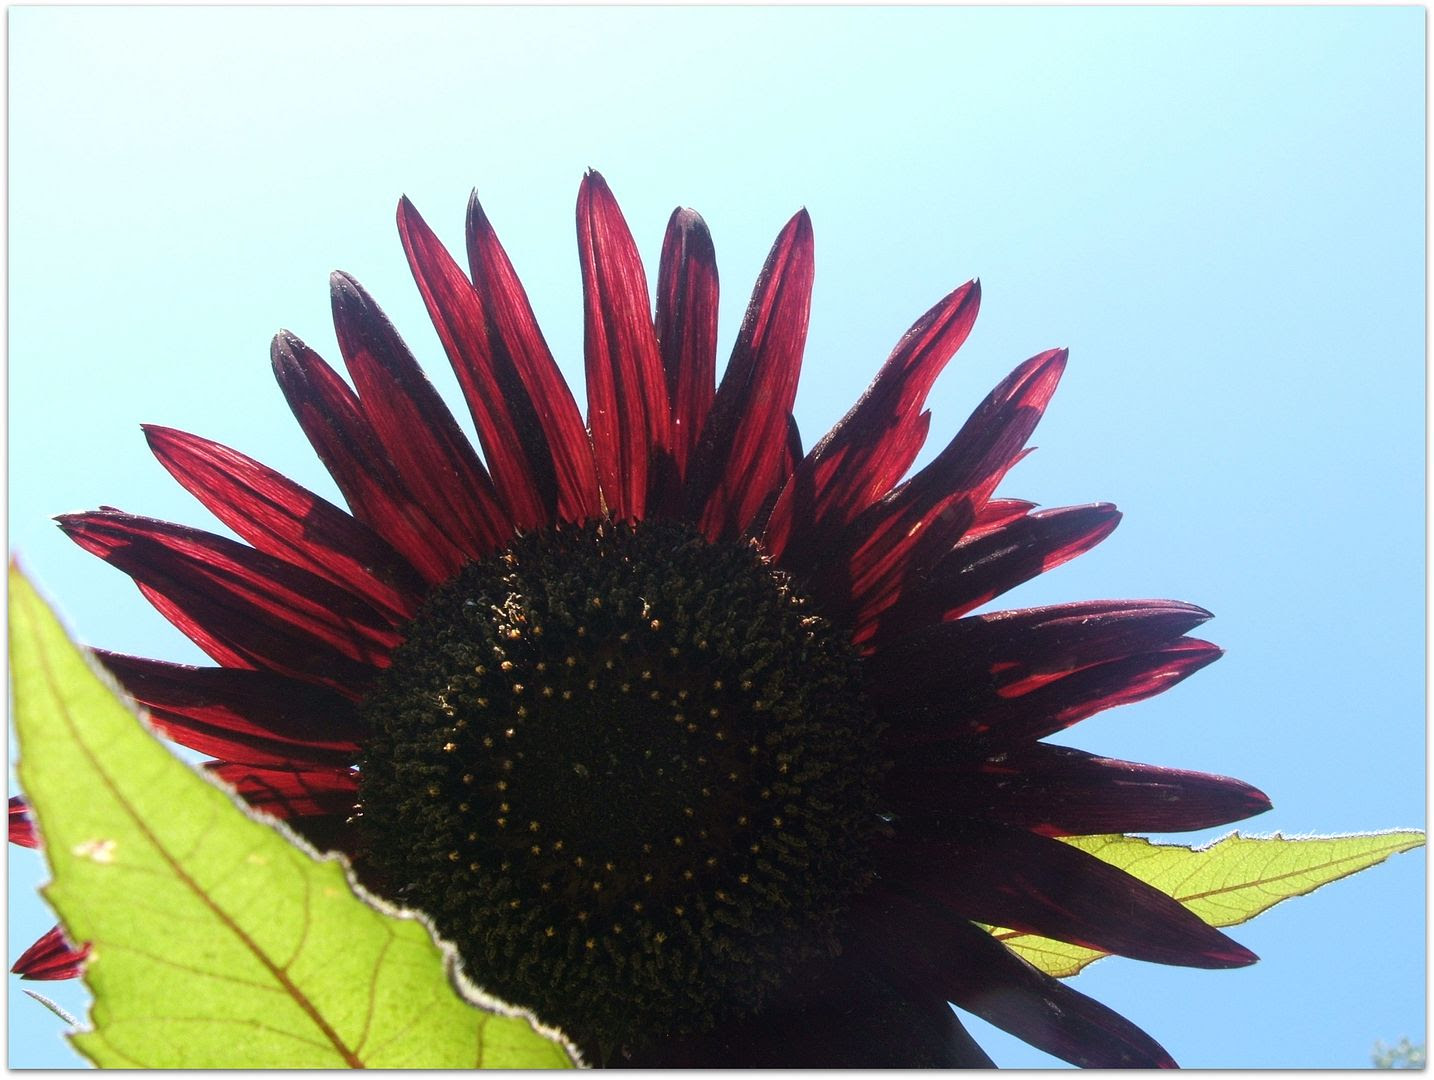 Prado Sunflowers by Angie Ouellette-Tower for godsgrowinggarden.com photo 012_zps78b6c63d.jpg